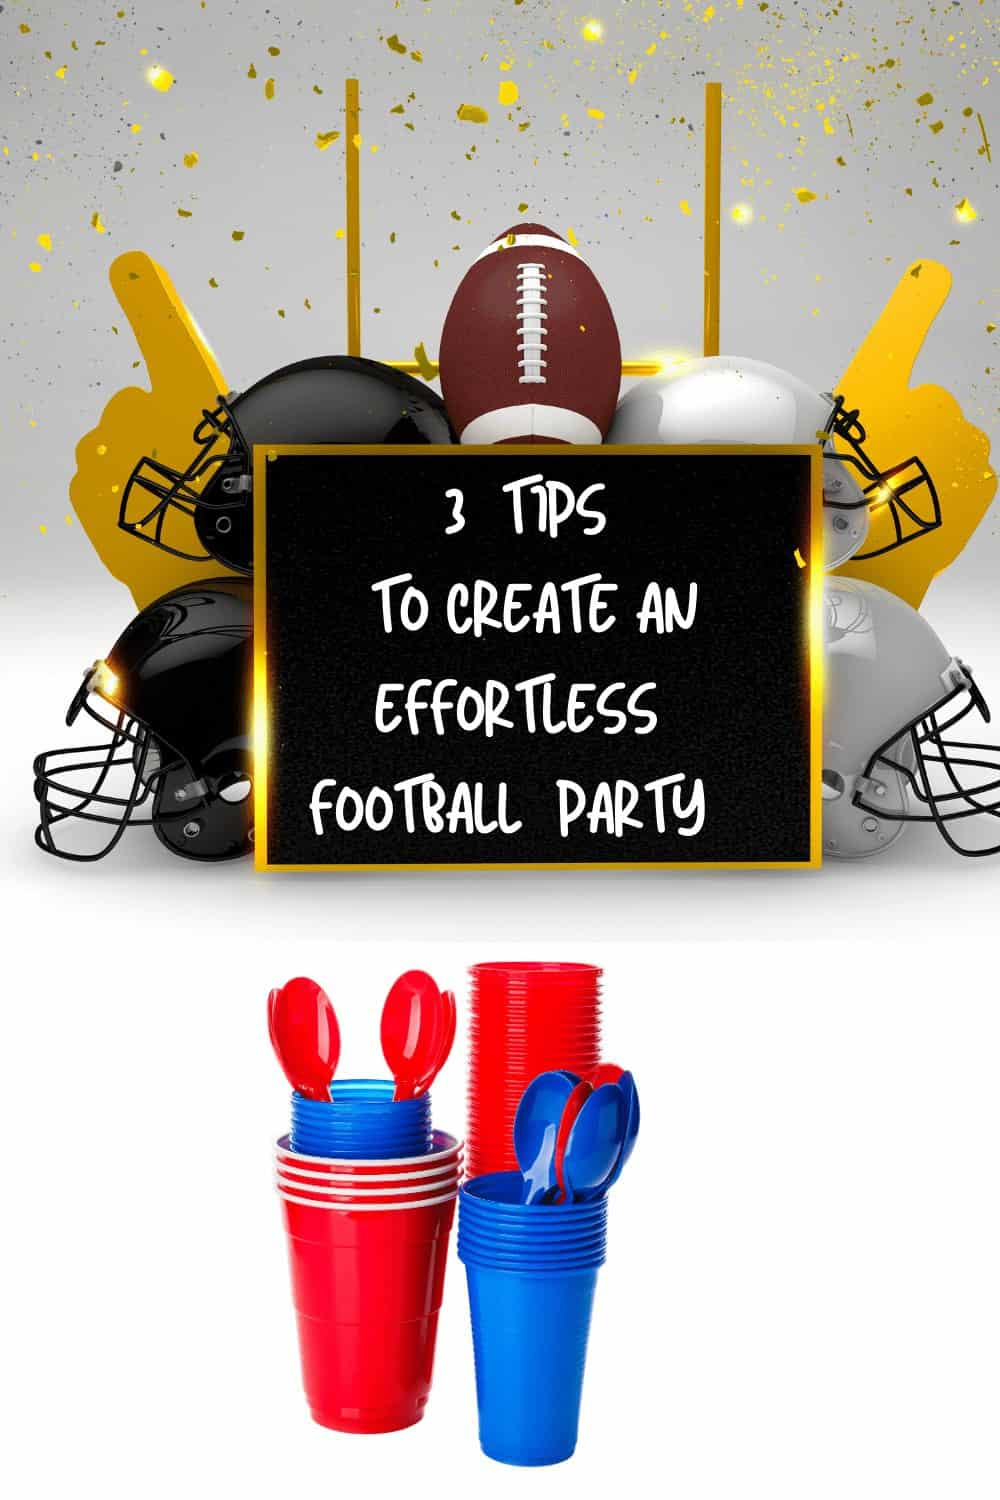 Plastic wares for football parties